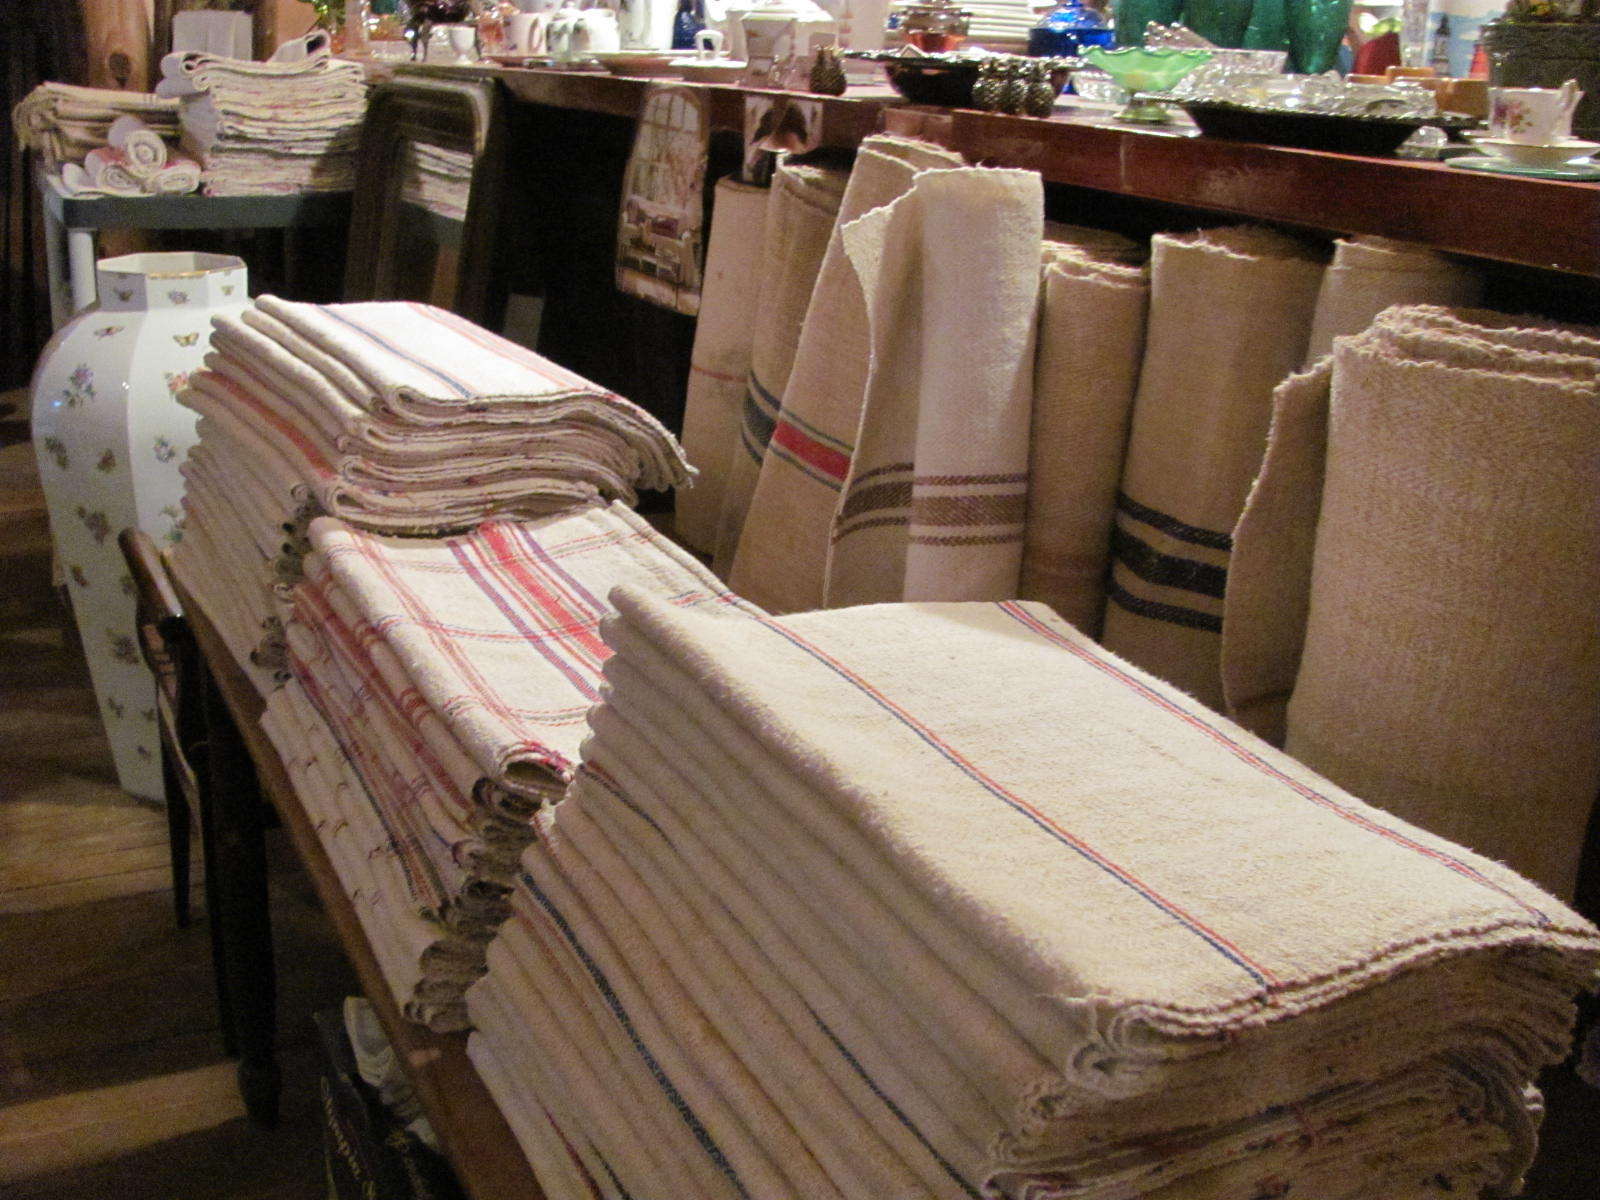 This Is Anna And Her Wonderful Store In Warrenton TX, Filled With  Jaw Dropping Handmade Imported Linens That She Brings Back From Her Home  Country Of ...